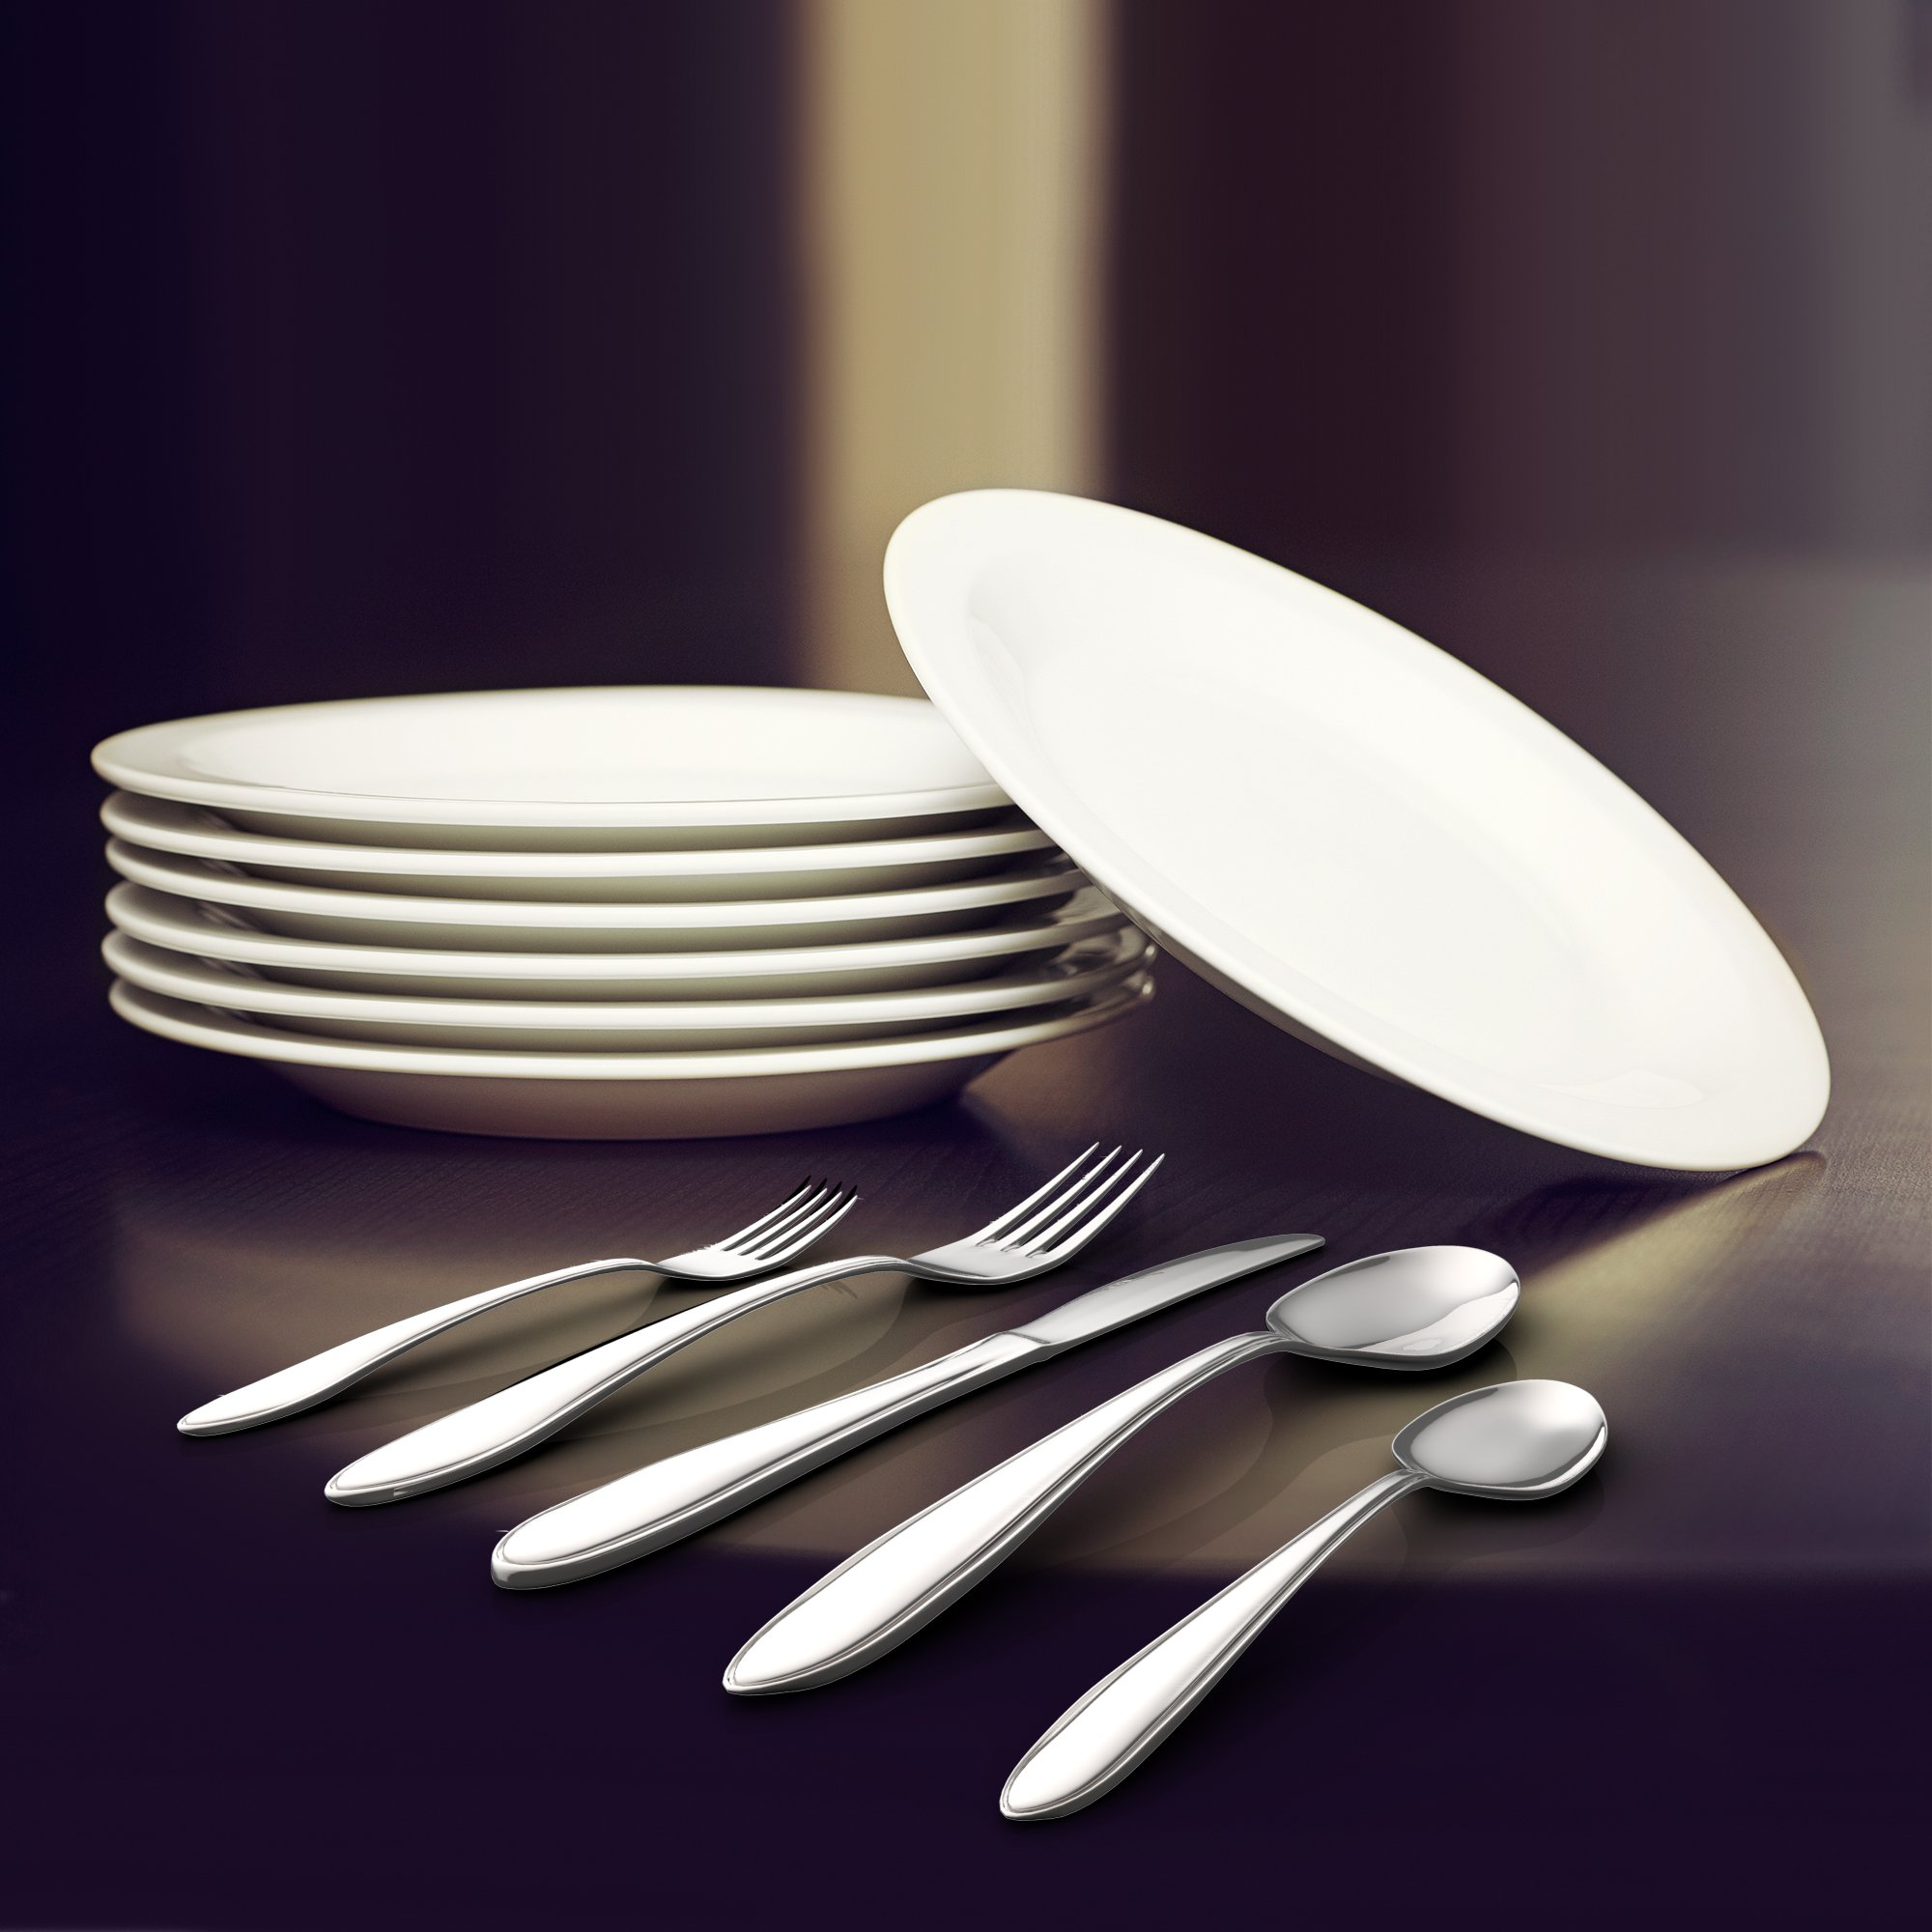 Royal 20-Piece Silverware Set - 18/10 Stainless Steel Utensils Forks Spoons Knives Set, Mirror Polished Cutlery Flatware Set by Royal (Image #4)